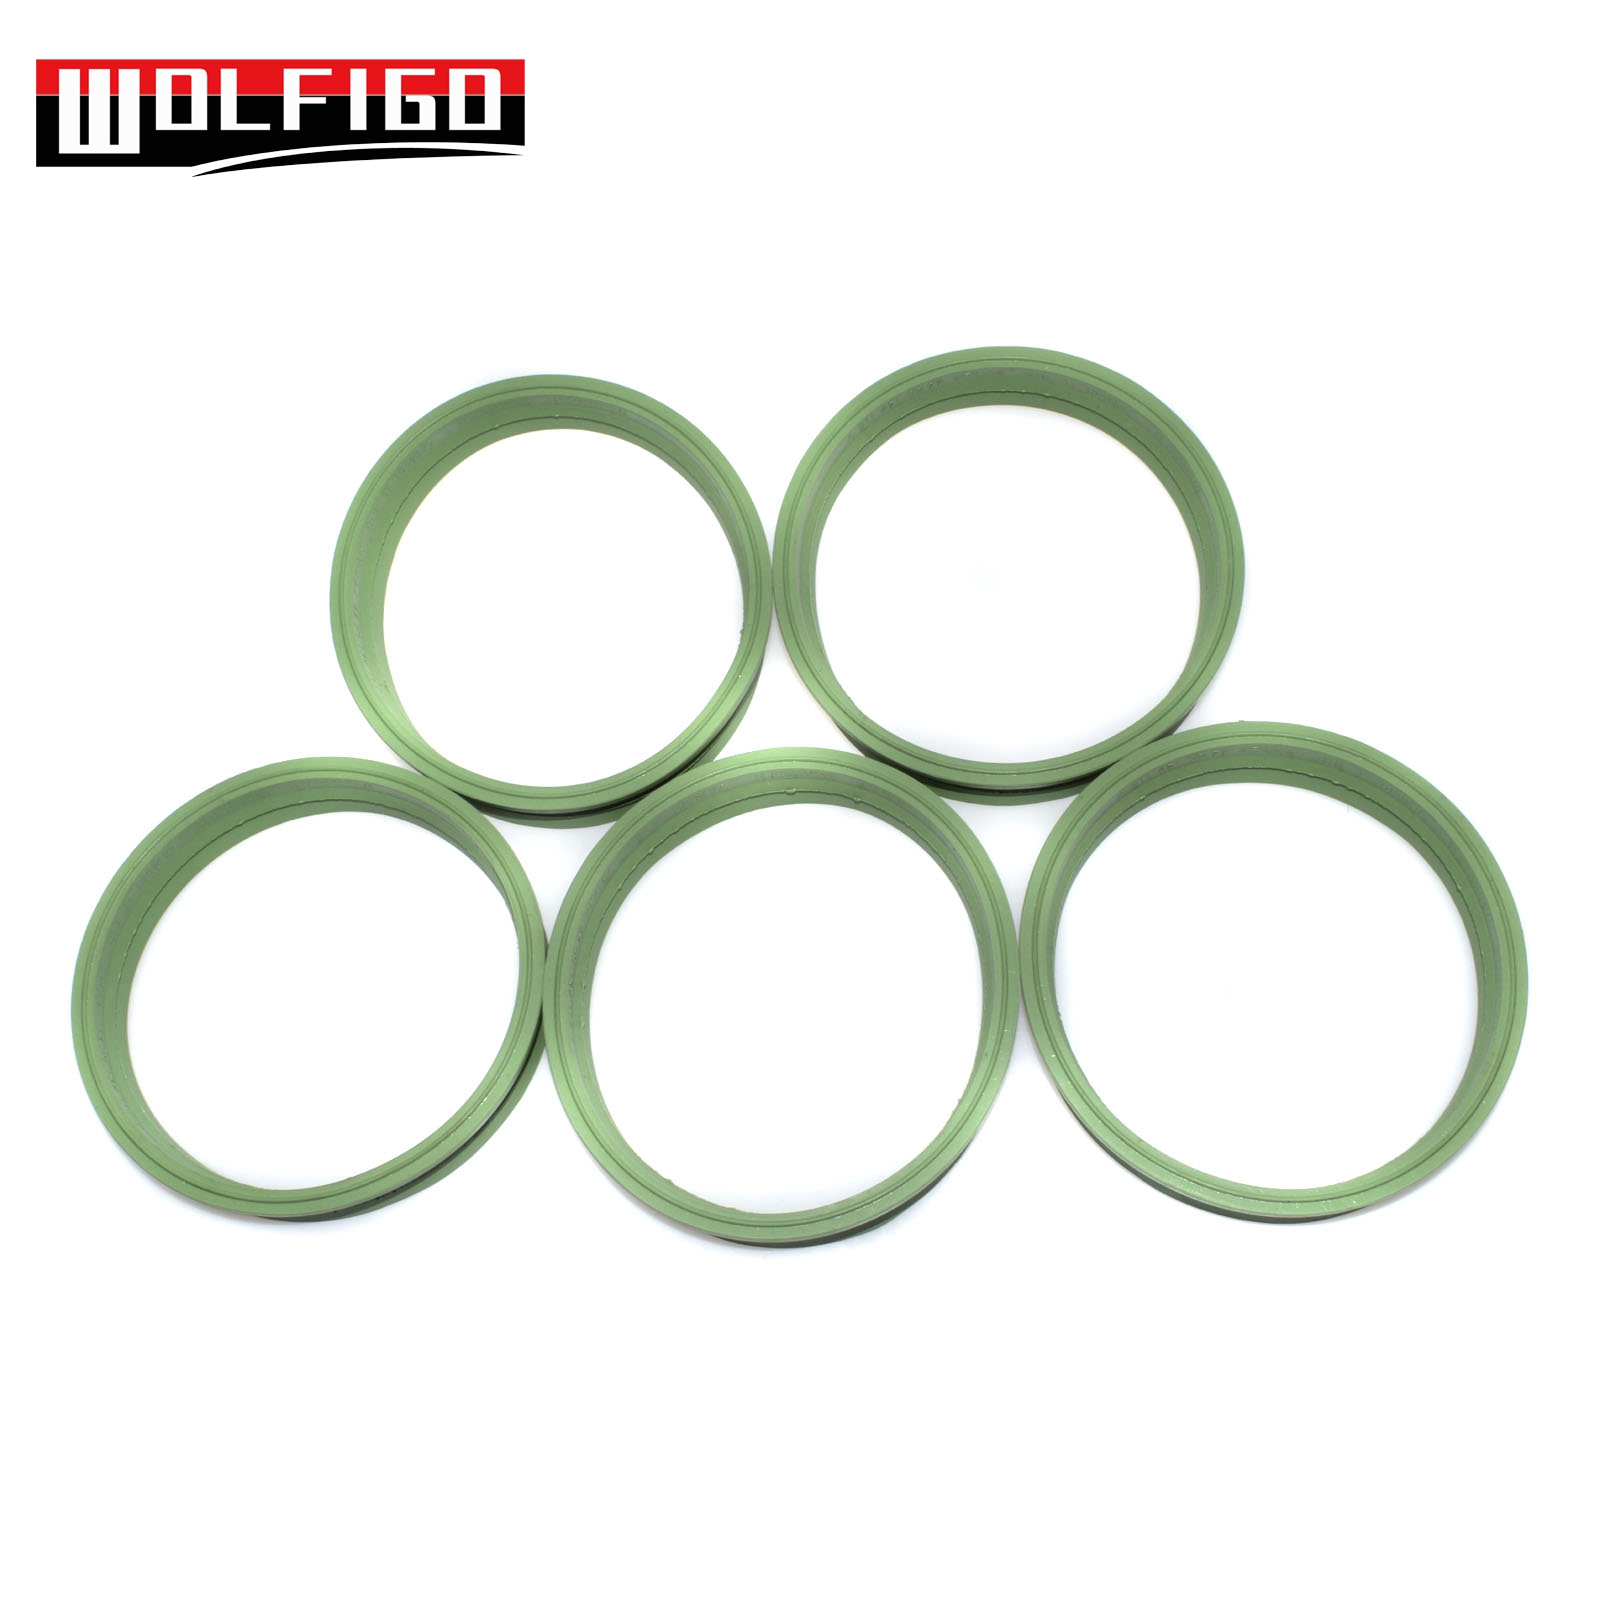 US $9 93 35% OFF|WOLFIGO A2114710579 Fuel Pump Seal Gaskets fit Mercedes  W203 C209 W211 2114710579-in Intake Gaskets from Automobiles & Motorcycles  on